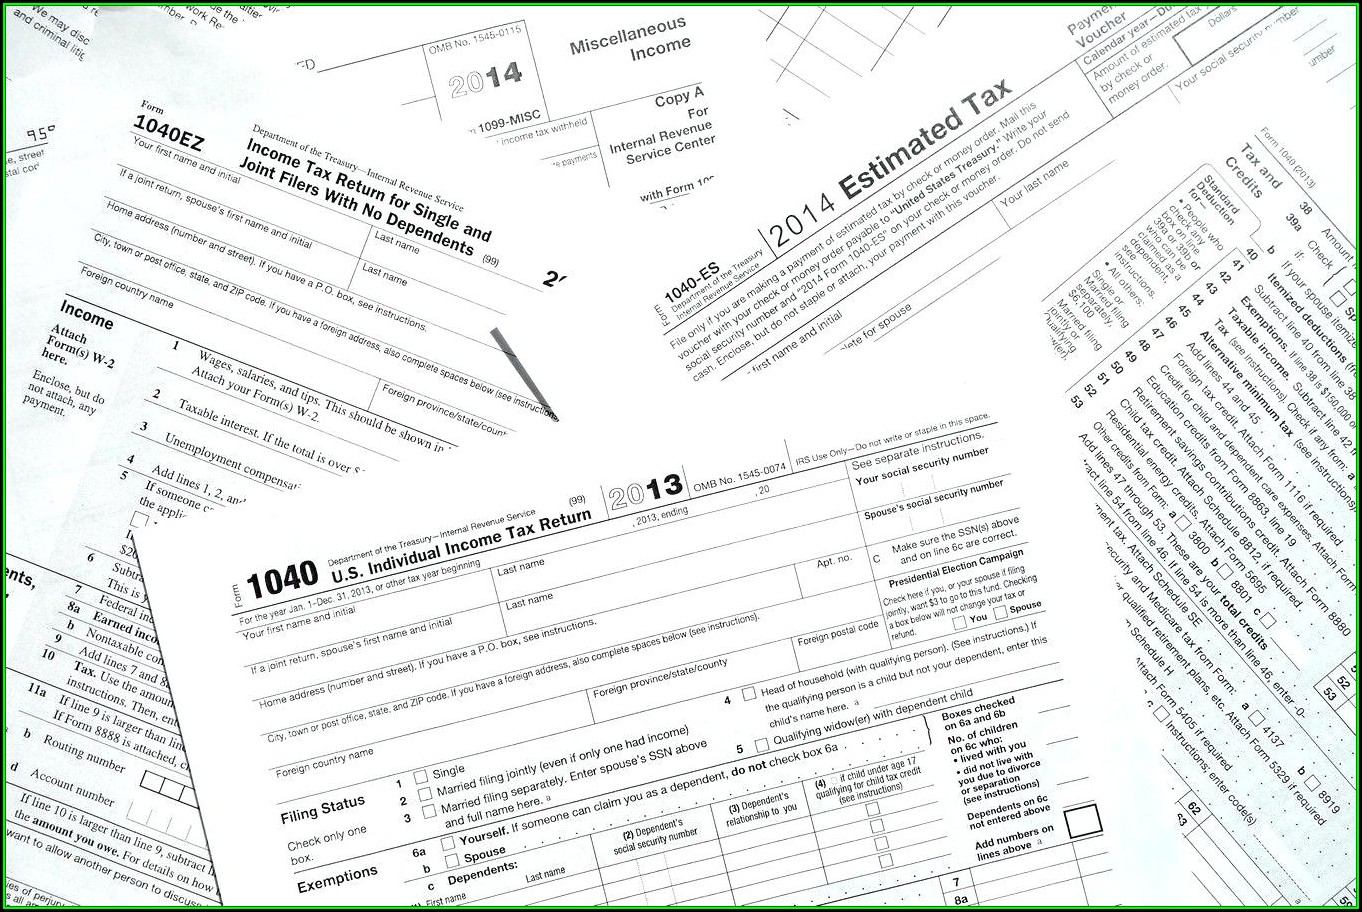 2013 Tax Return Form 1040a